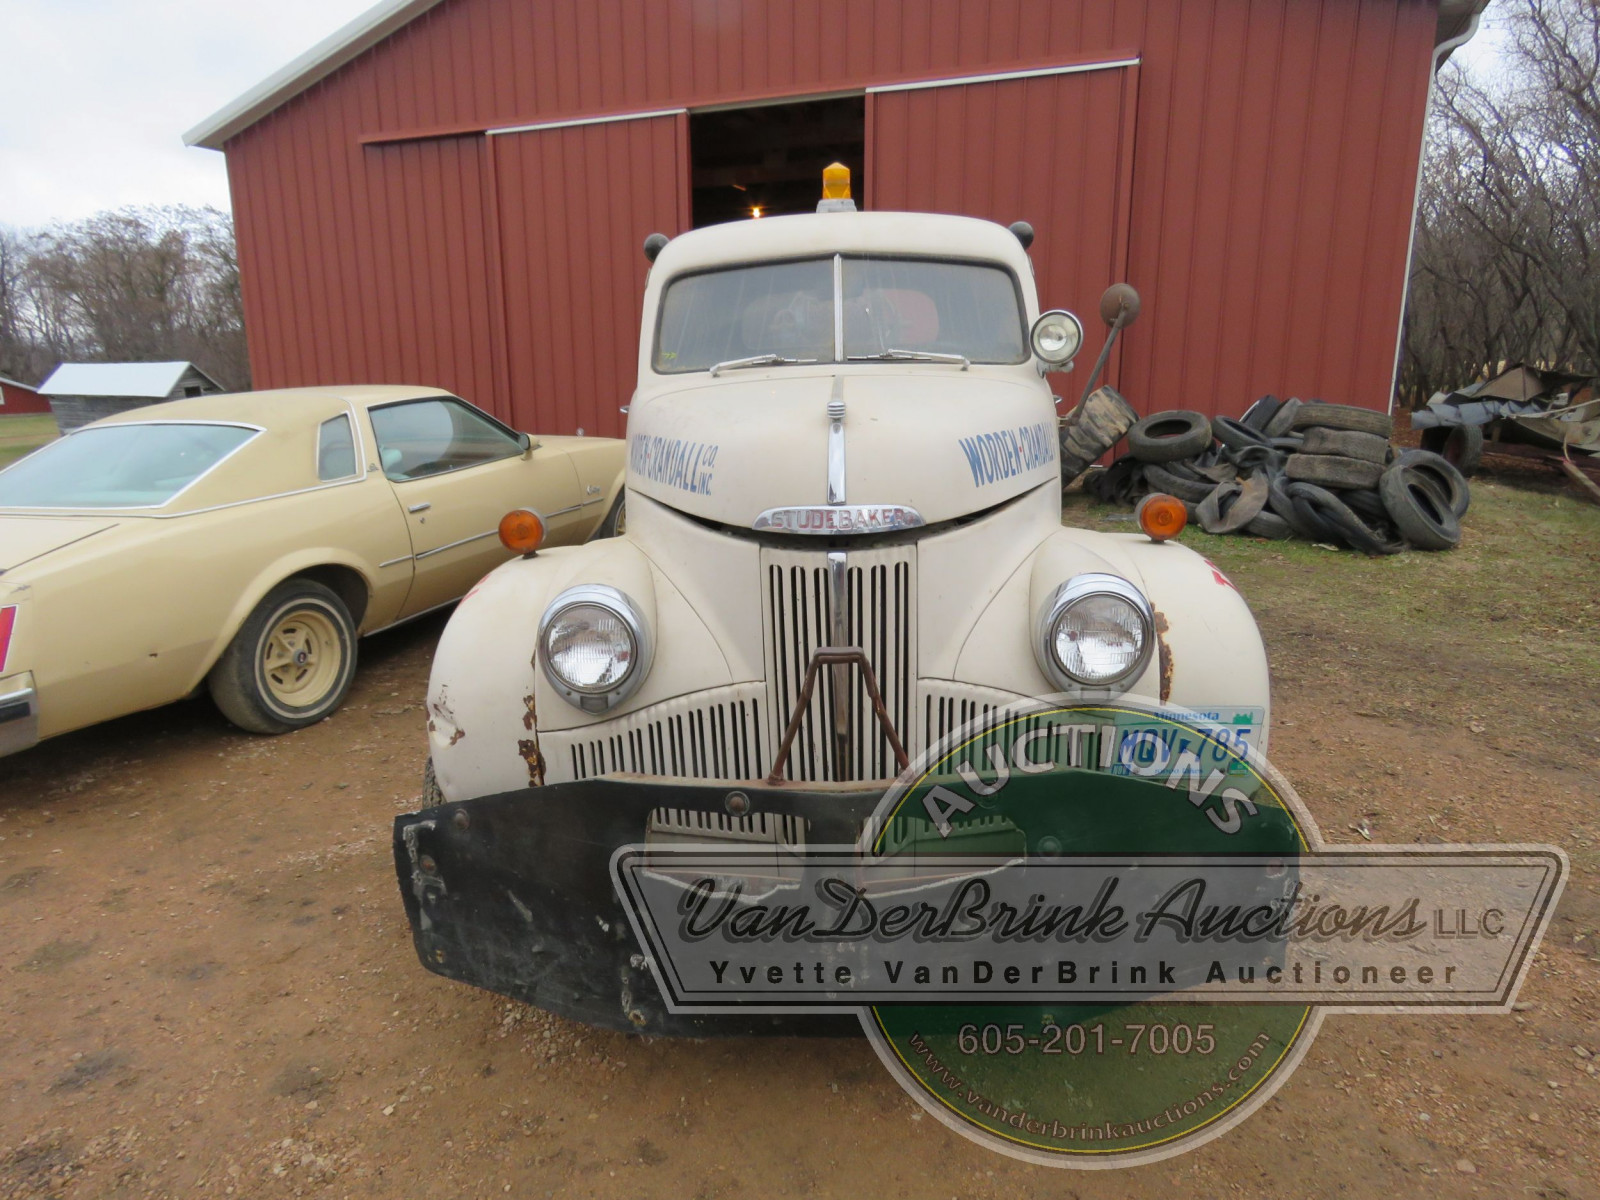 1947 Studebaker Towtruck - Image 2